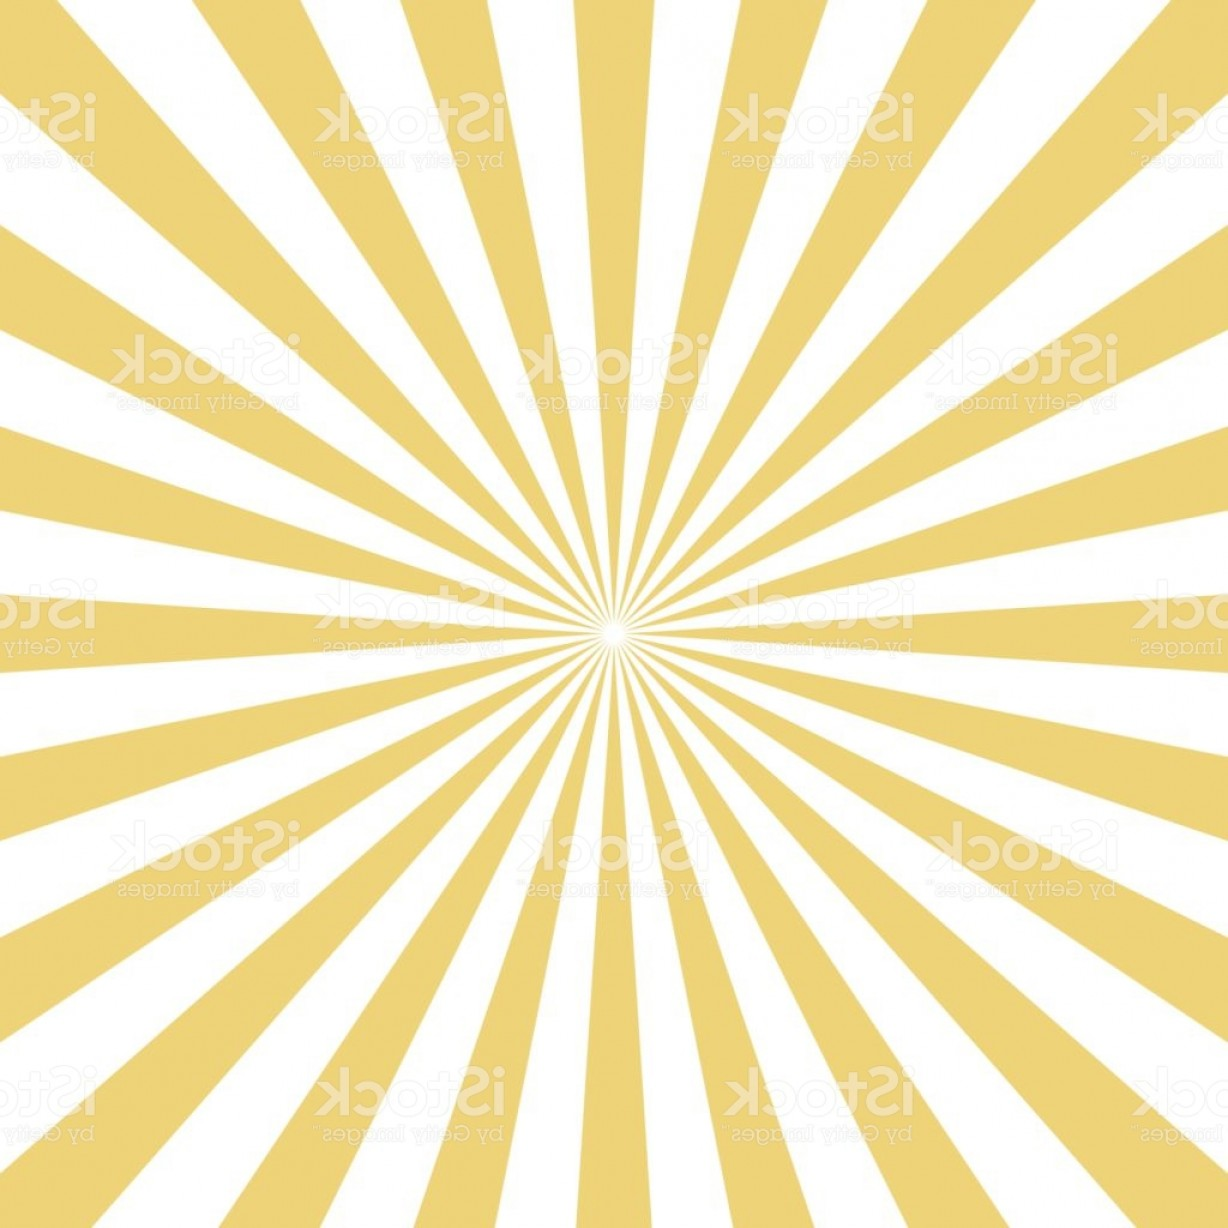 Backgroung Vector: Radial Yellow Sun Burst Beams On White Background Vector Gm